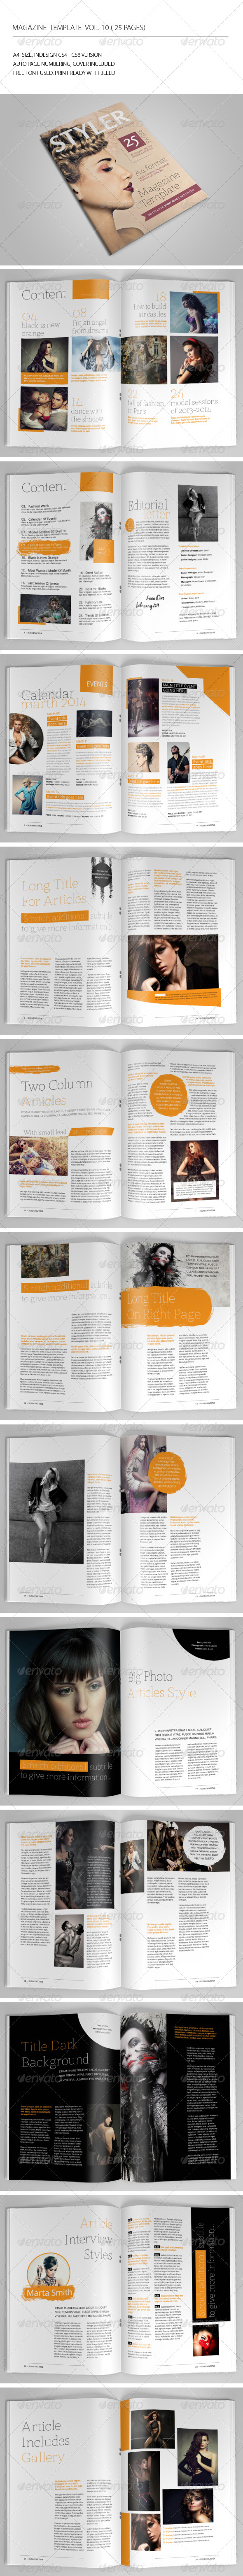 25 Pages Magazine Template Vol10 - Magazines Print Templates